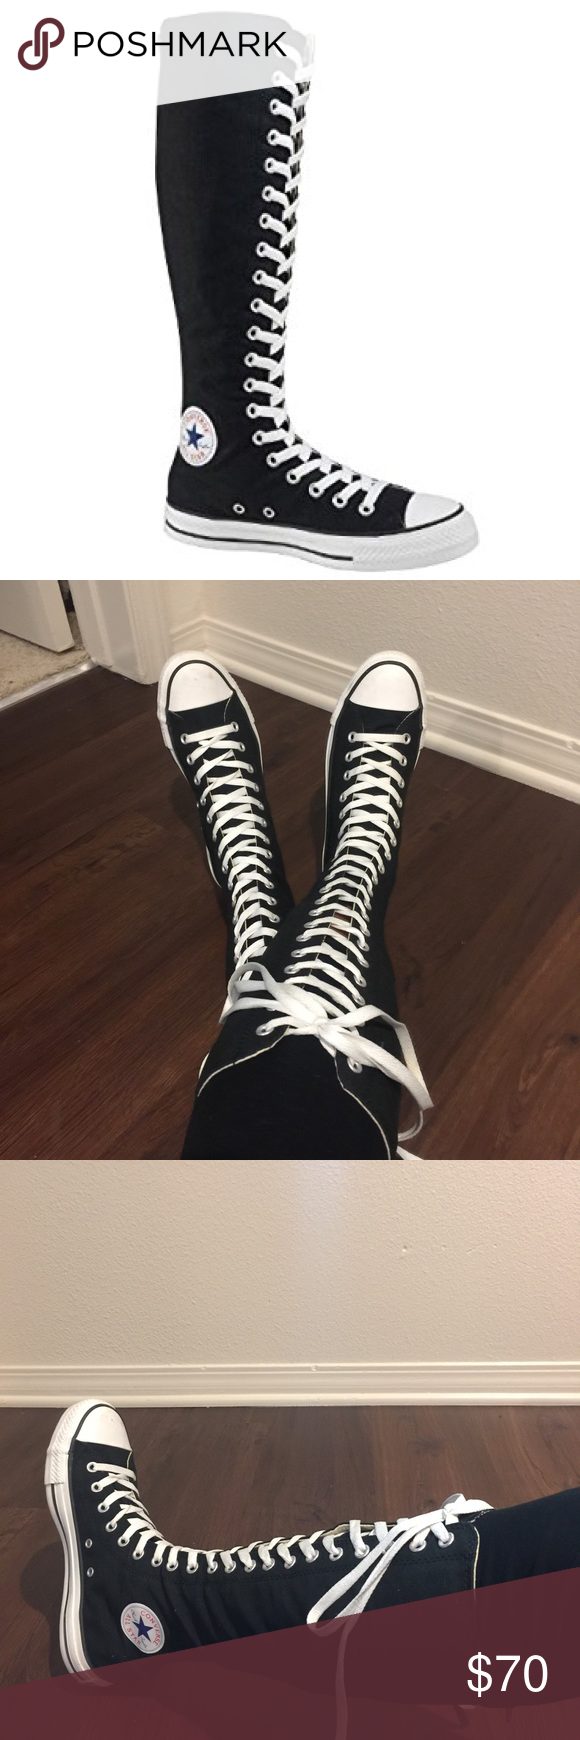 42e0f171a51c RARE Converse Chuck Taylor XX Hi Knee High Boots Double extra-high All Star  Chucks